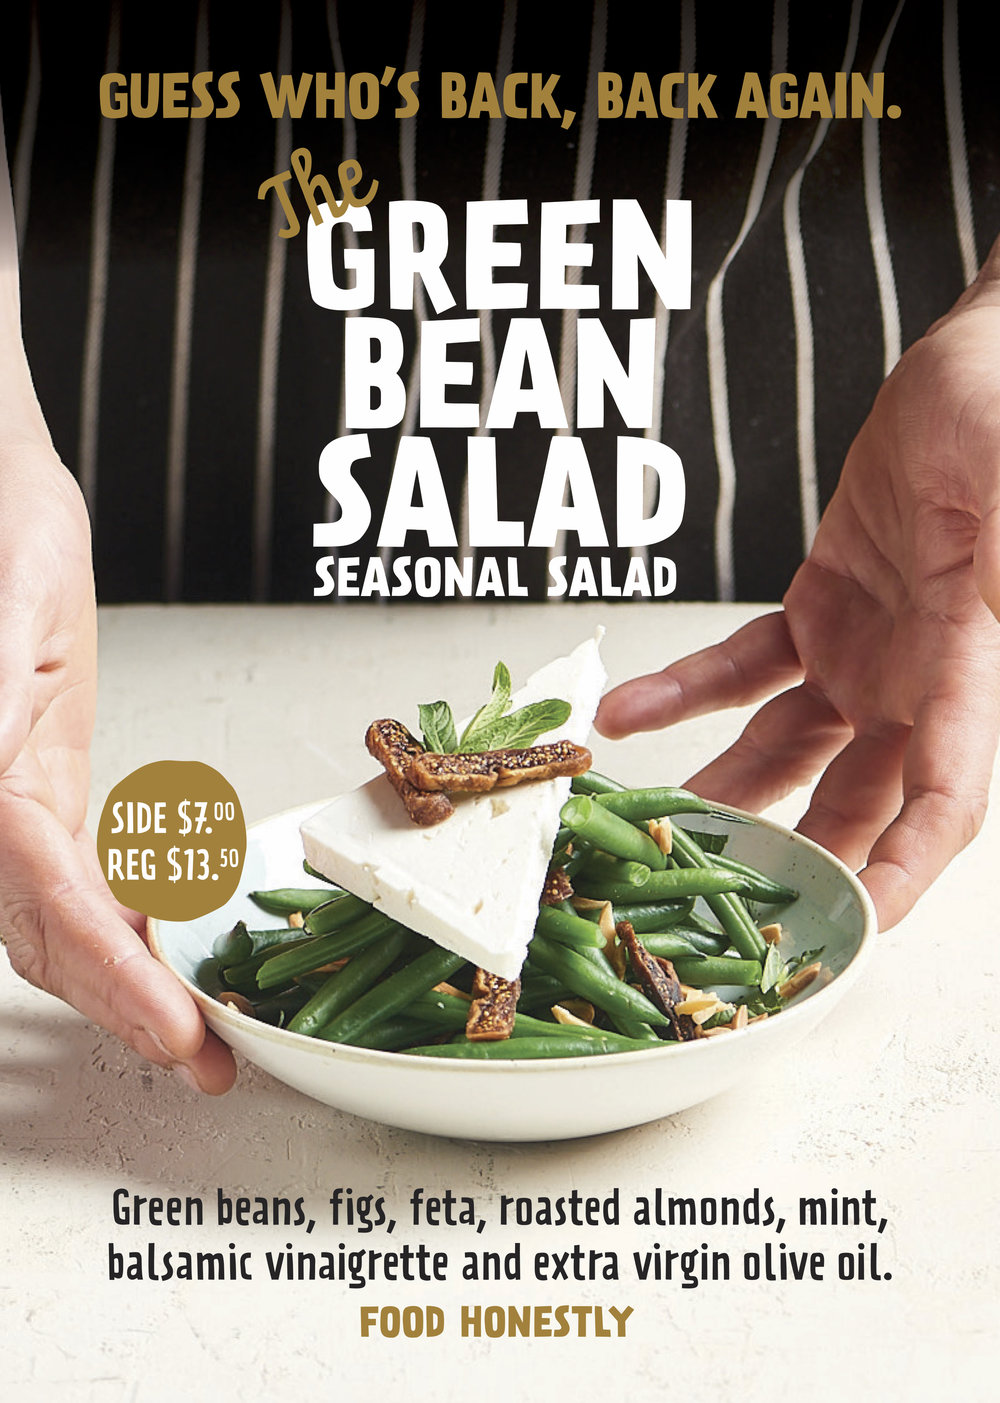 Green Bean Salad Express Stores.jpg